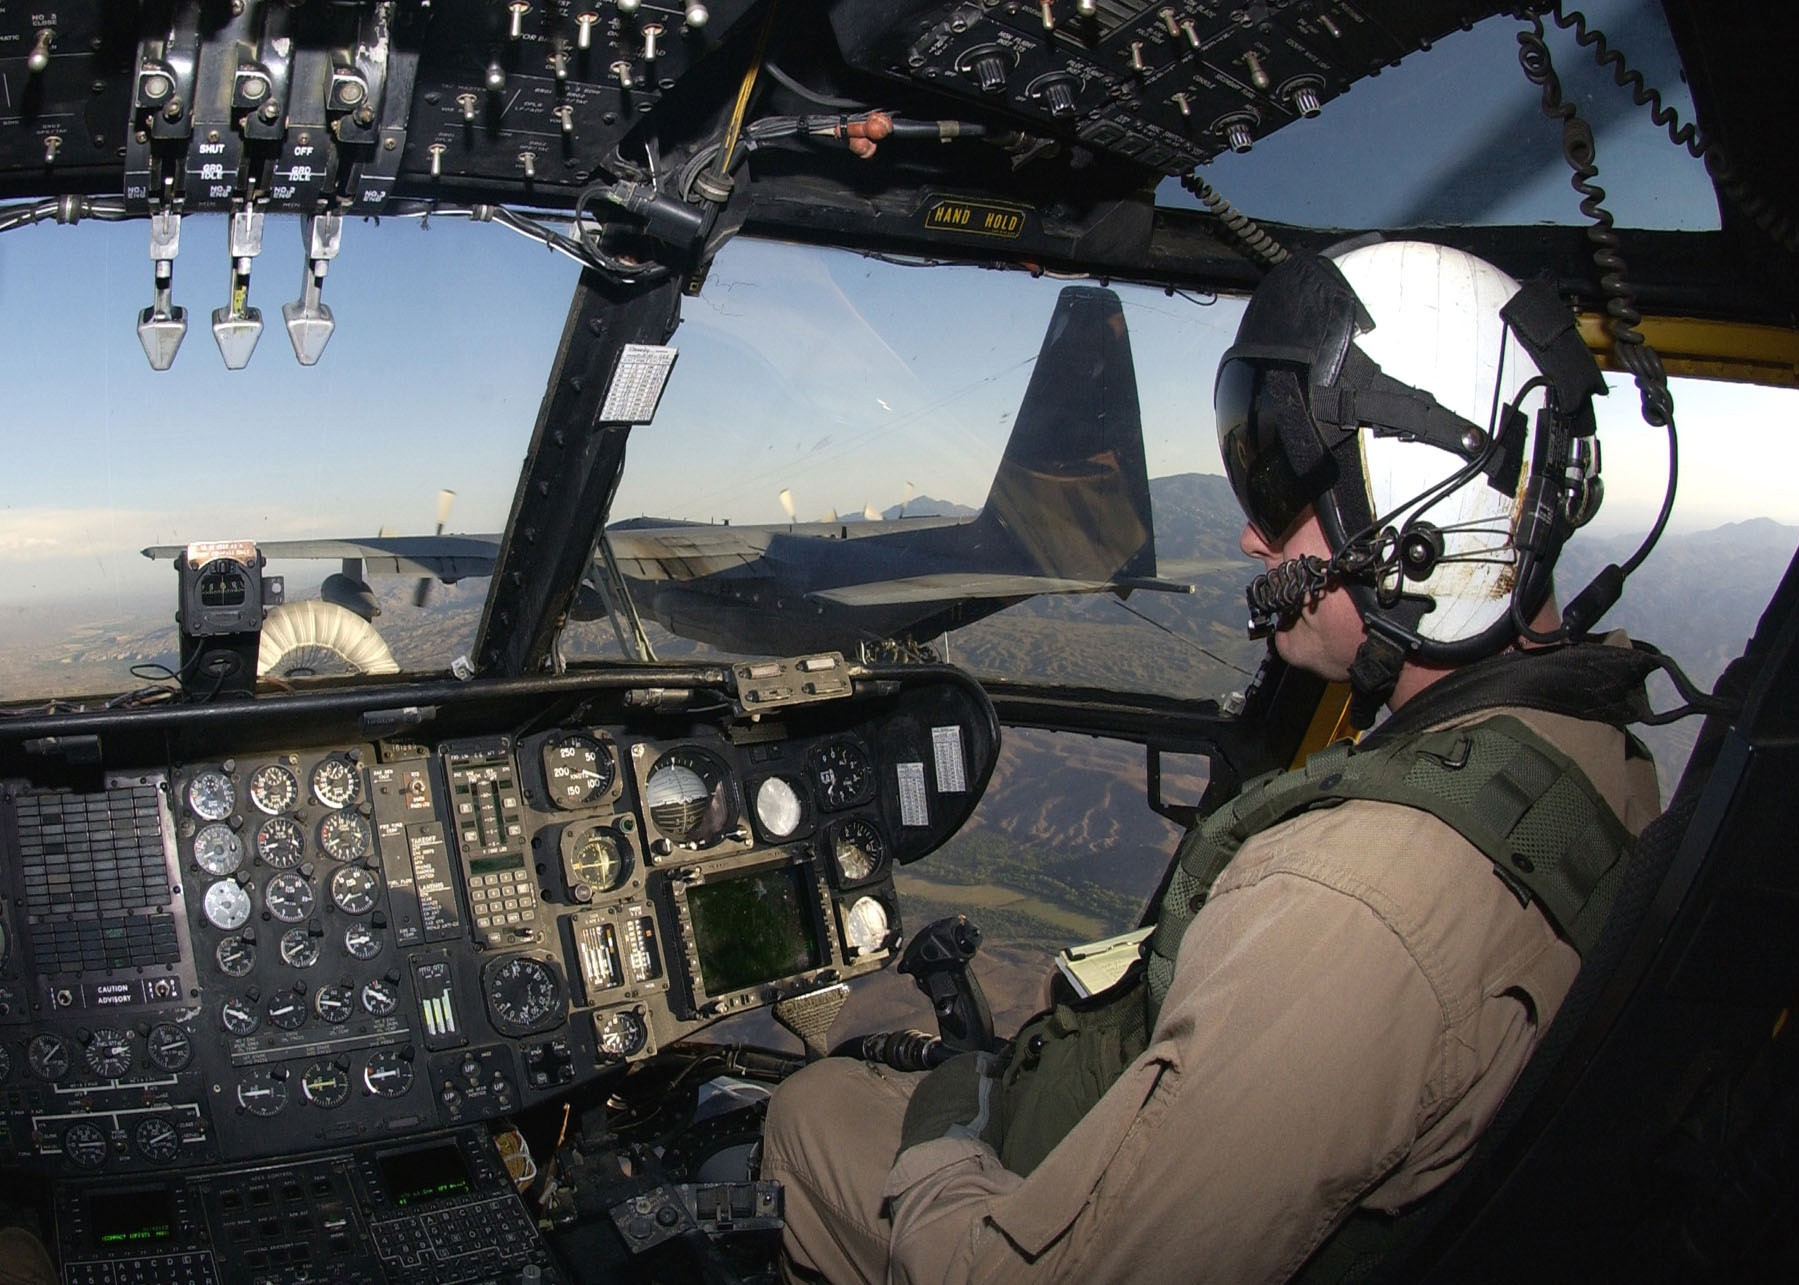 View of the CH-53E's cockpit during an in-flight refueling operation with an Air Force HC-130 Hercul